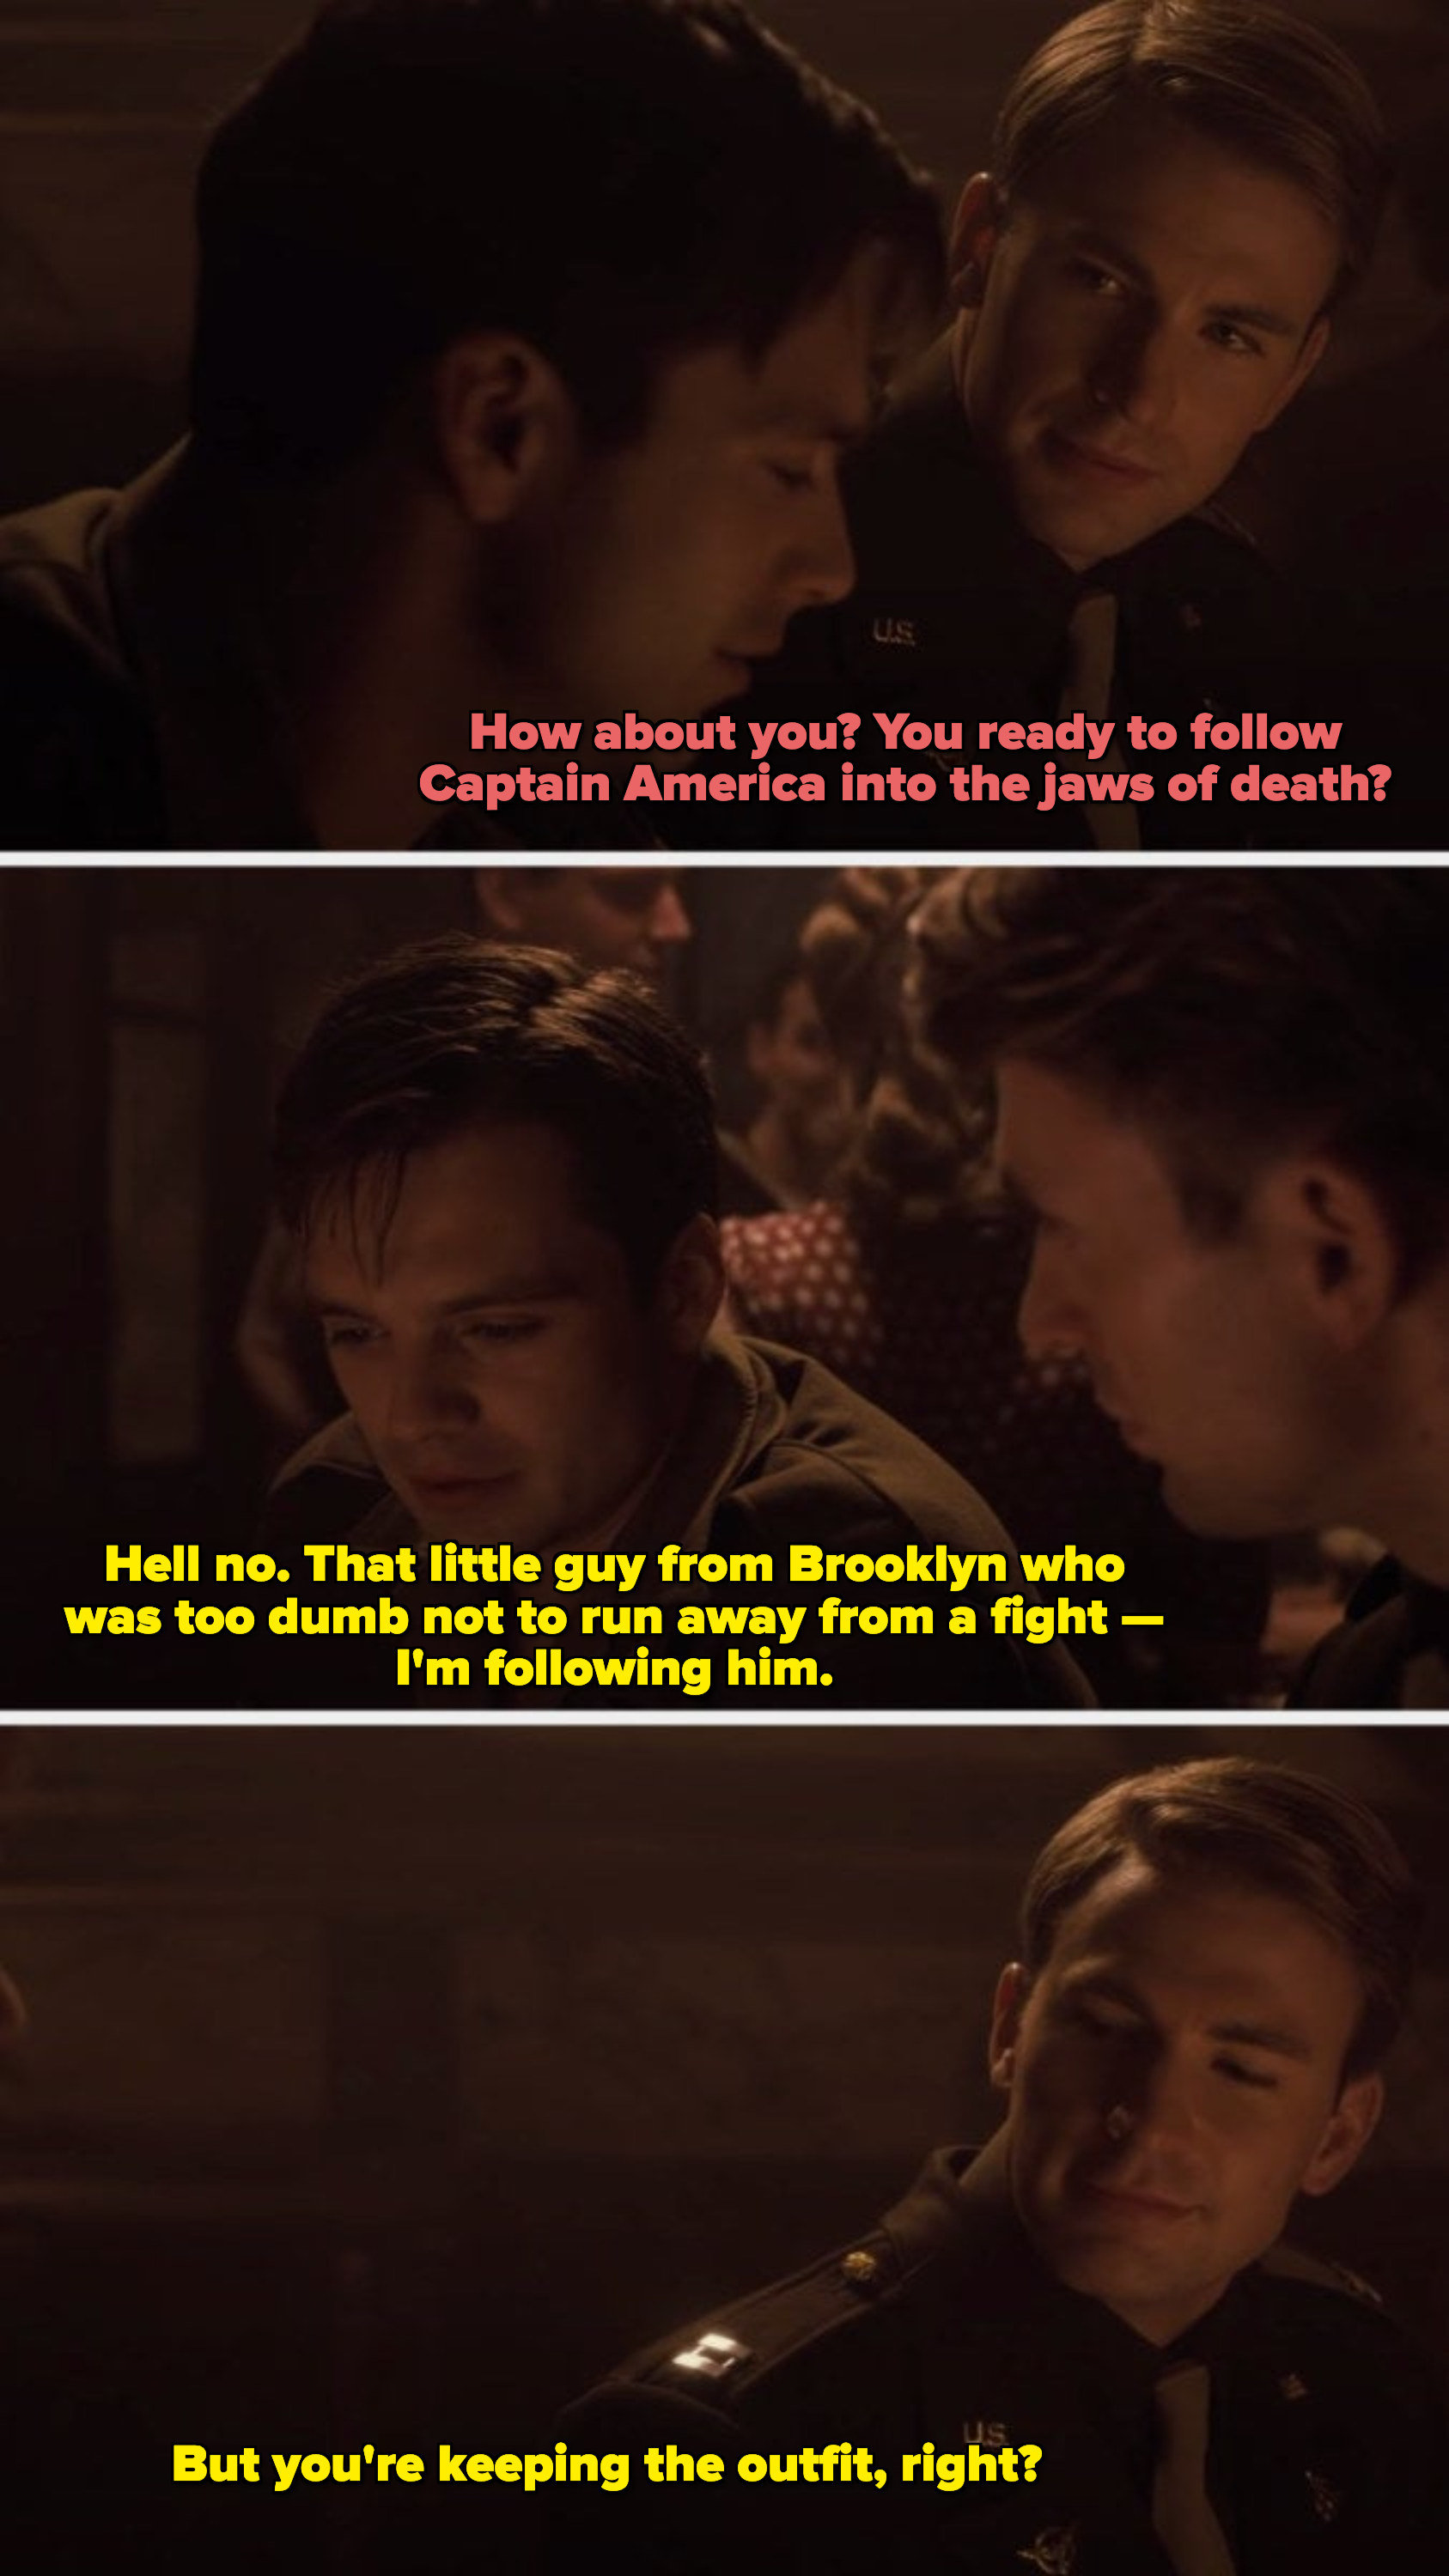 Bucky saying he's not following Captain America, he's following the little guy from Brooklyn too dumb not to run away from a fight. And asking Steve if he's keeping the costume